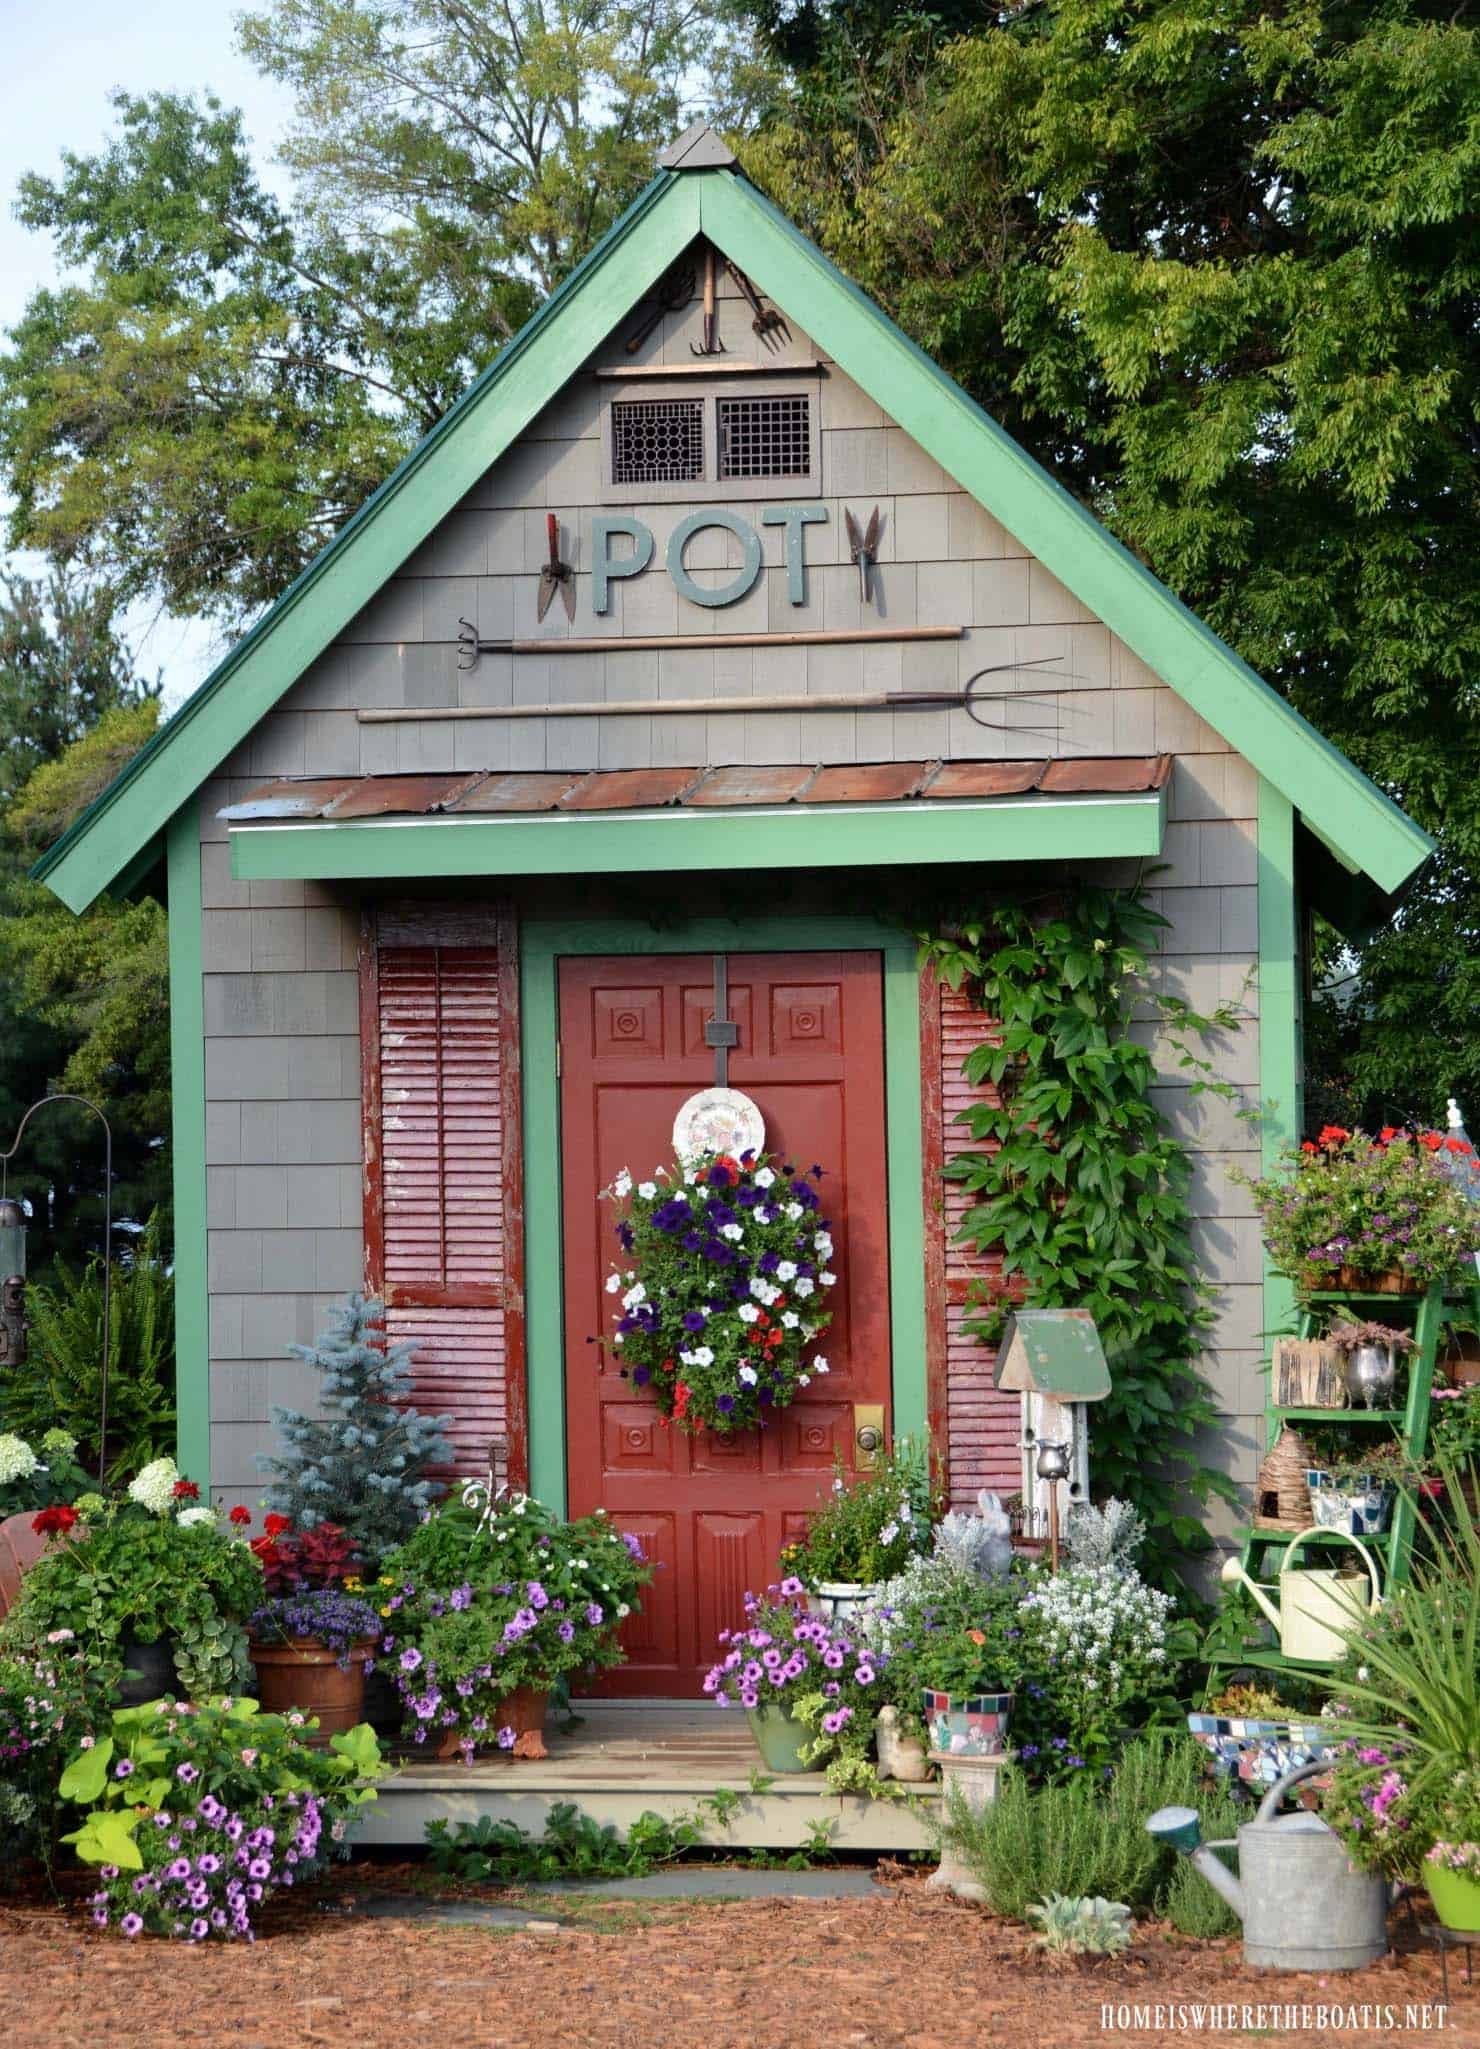 potting-shed-backyard-garden-getaway